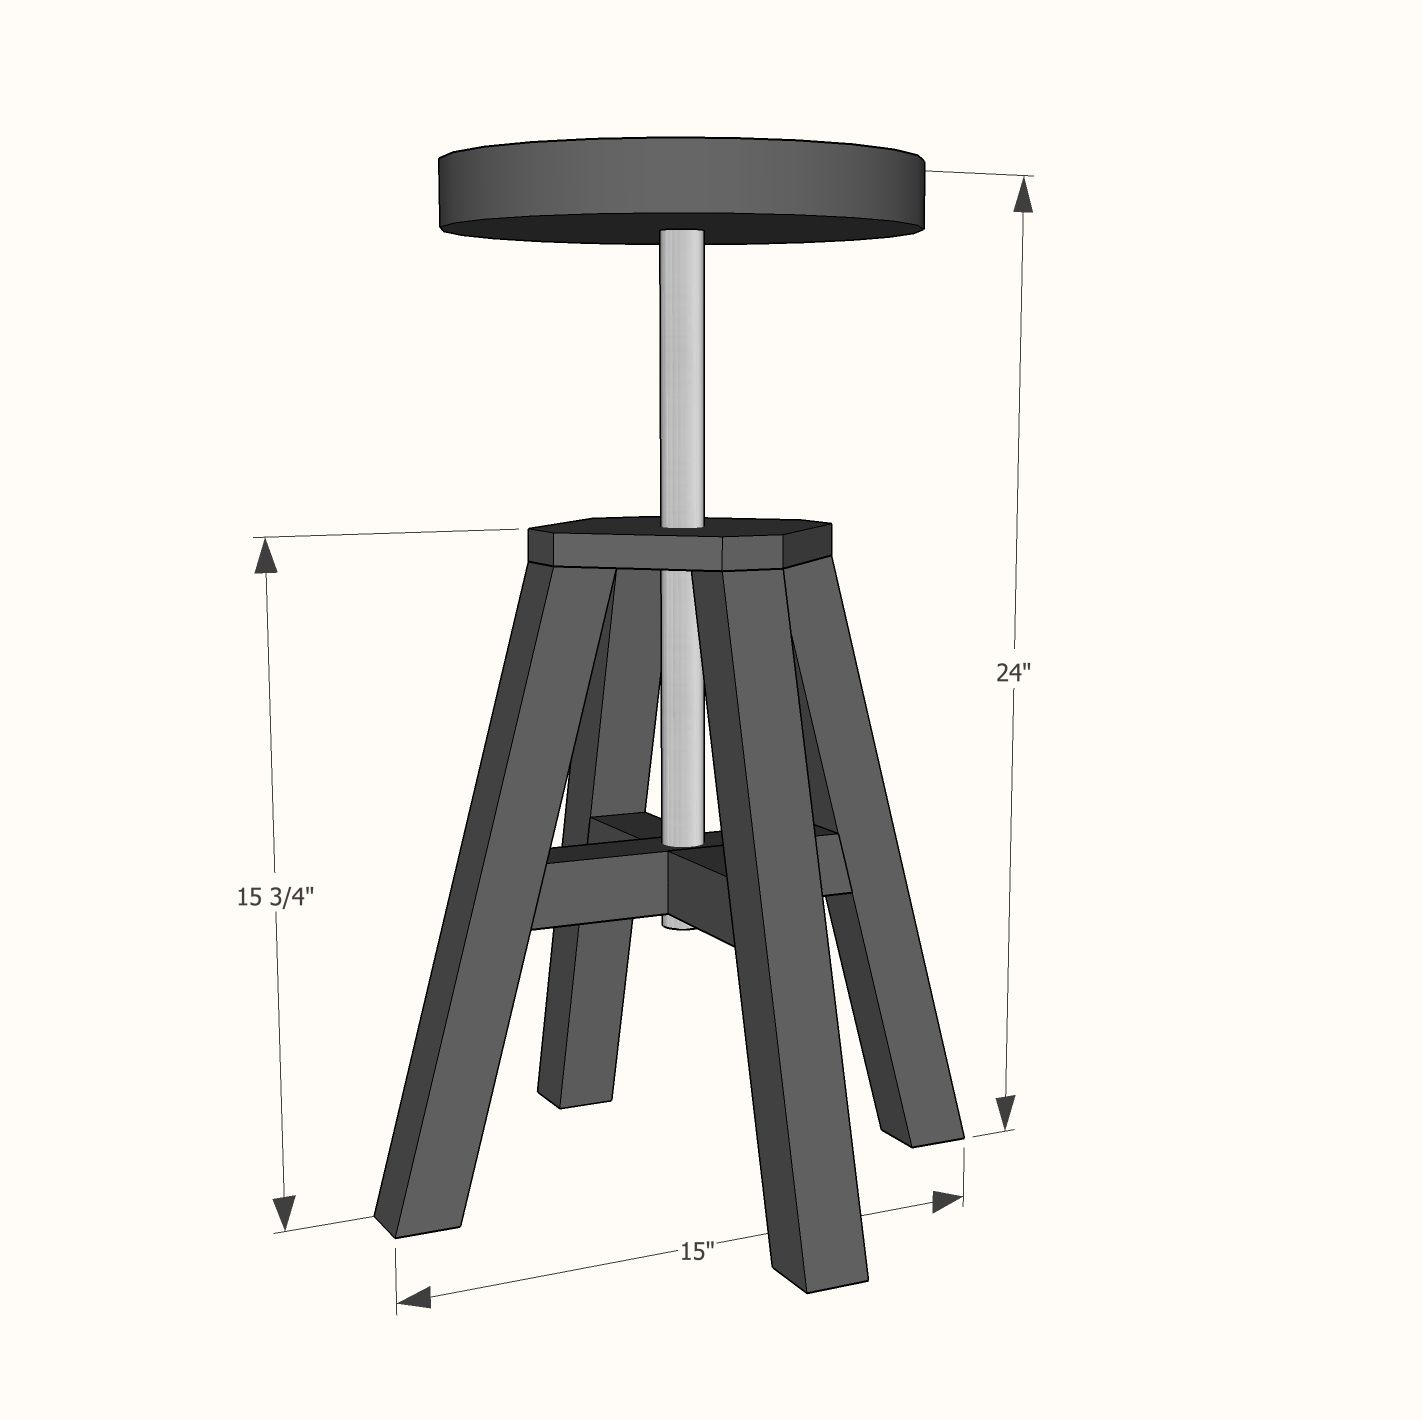 Brilliant Ana White Build A Adjustable Height Wood And Metal Stool Beatyapartments Chair Design Images Beatyapartmentscom